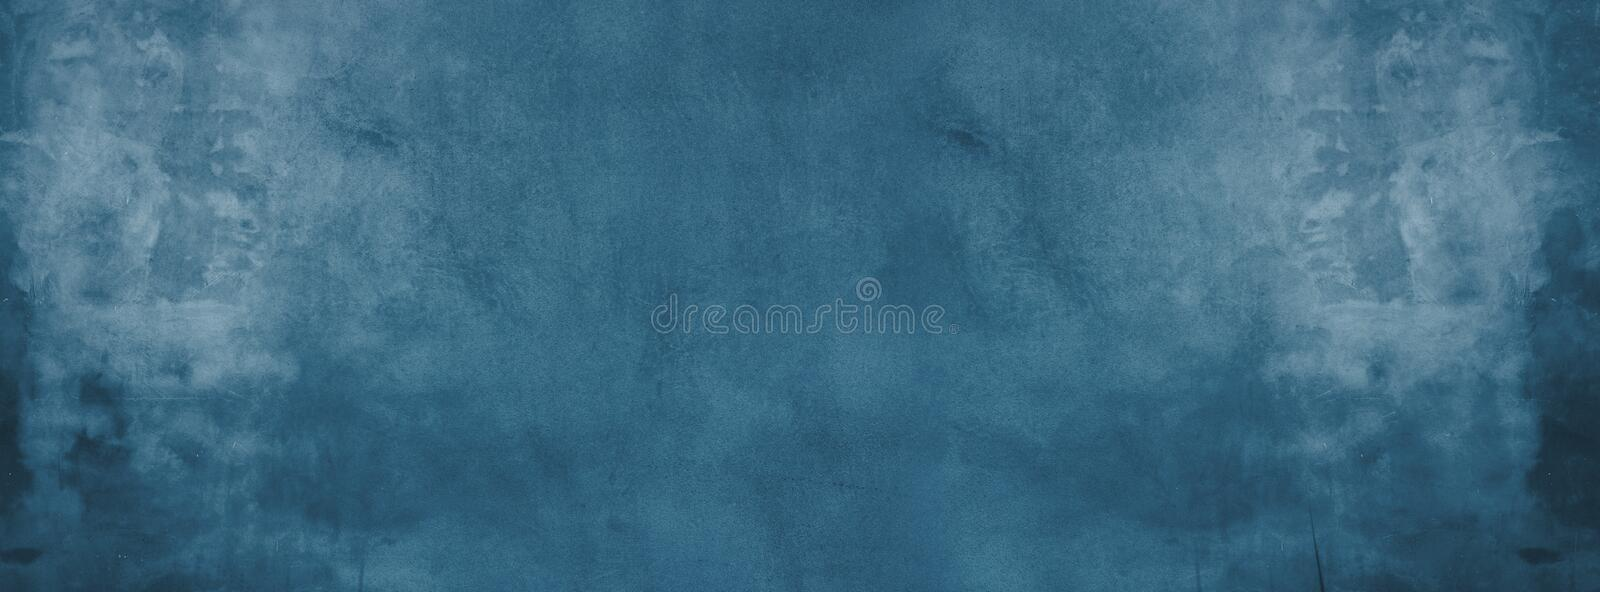 blue cement wall with dark texture and banner background stock images